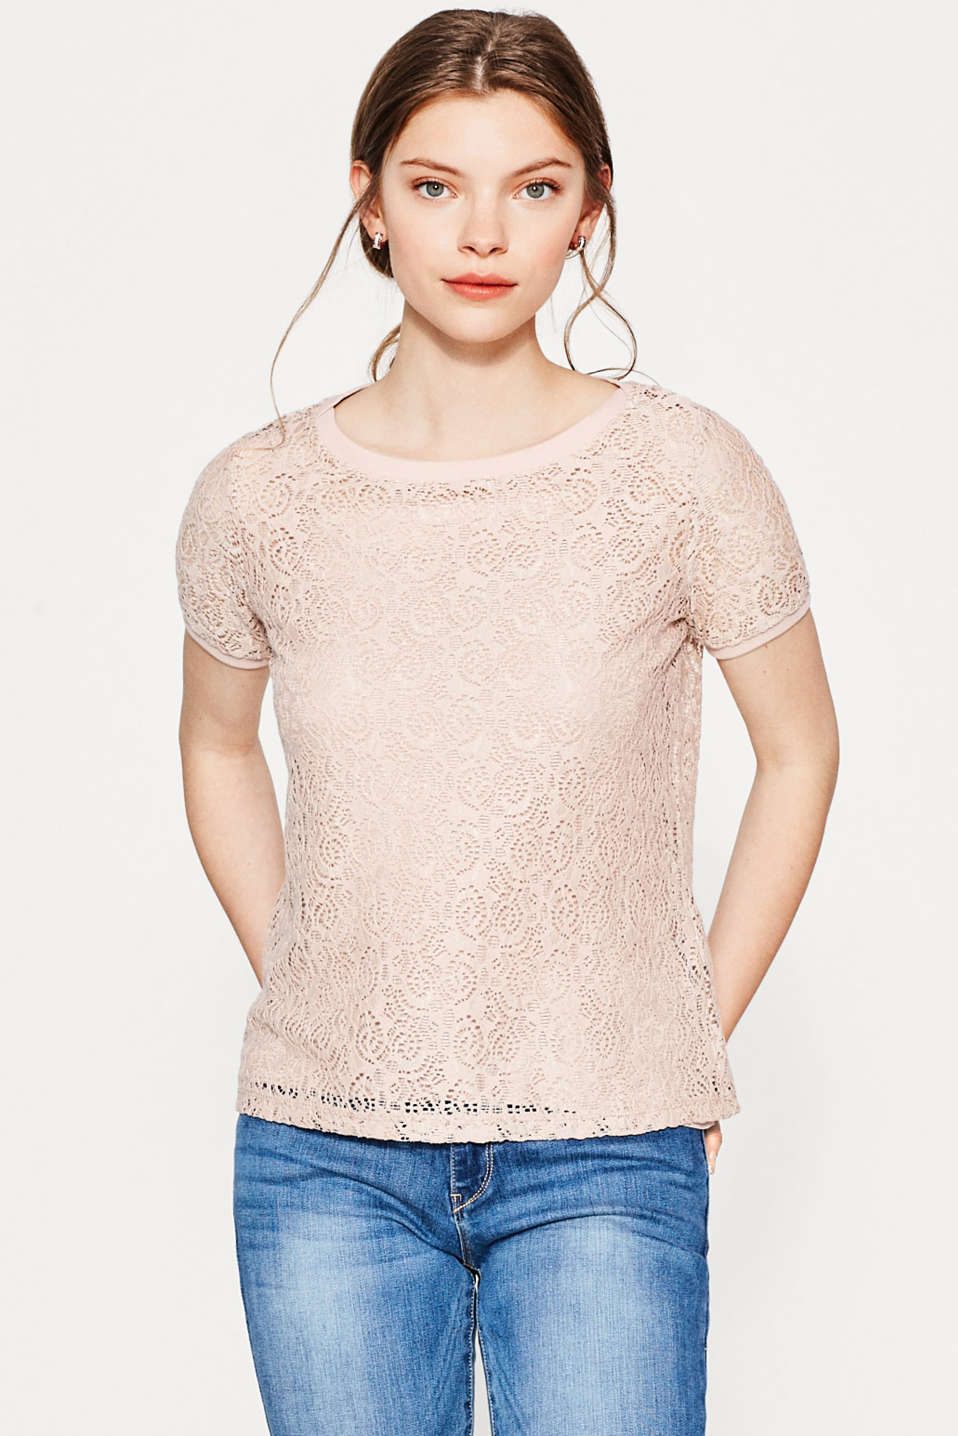 Esprit - Two-in-one top in delicate lace